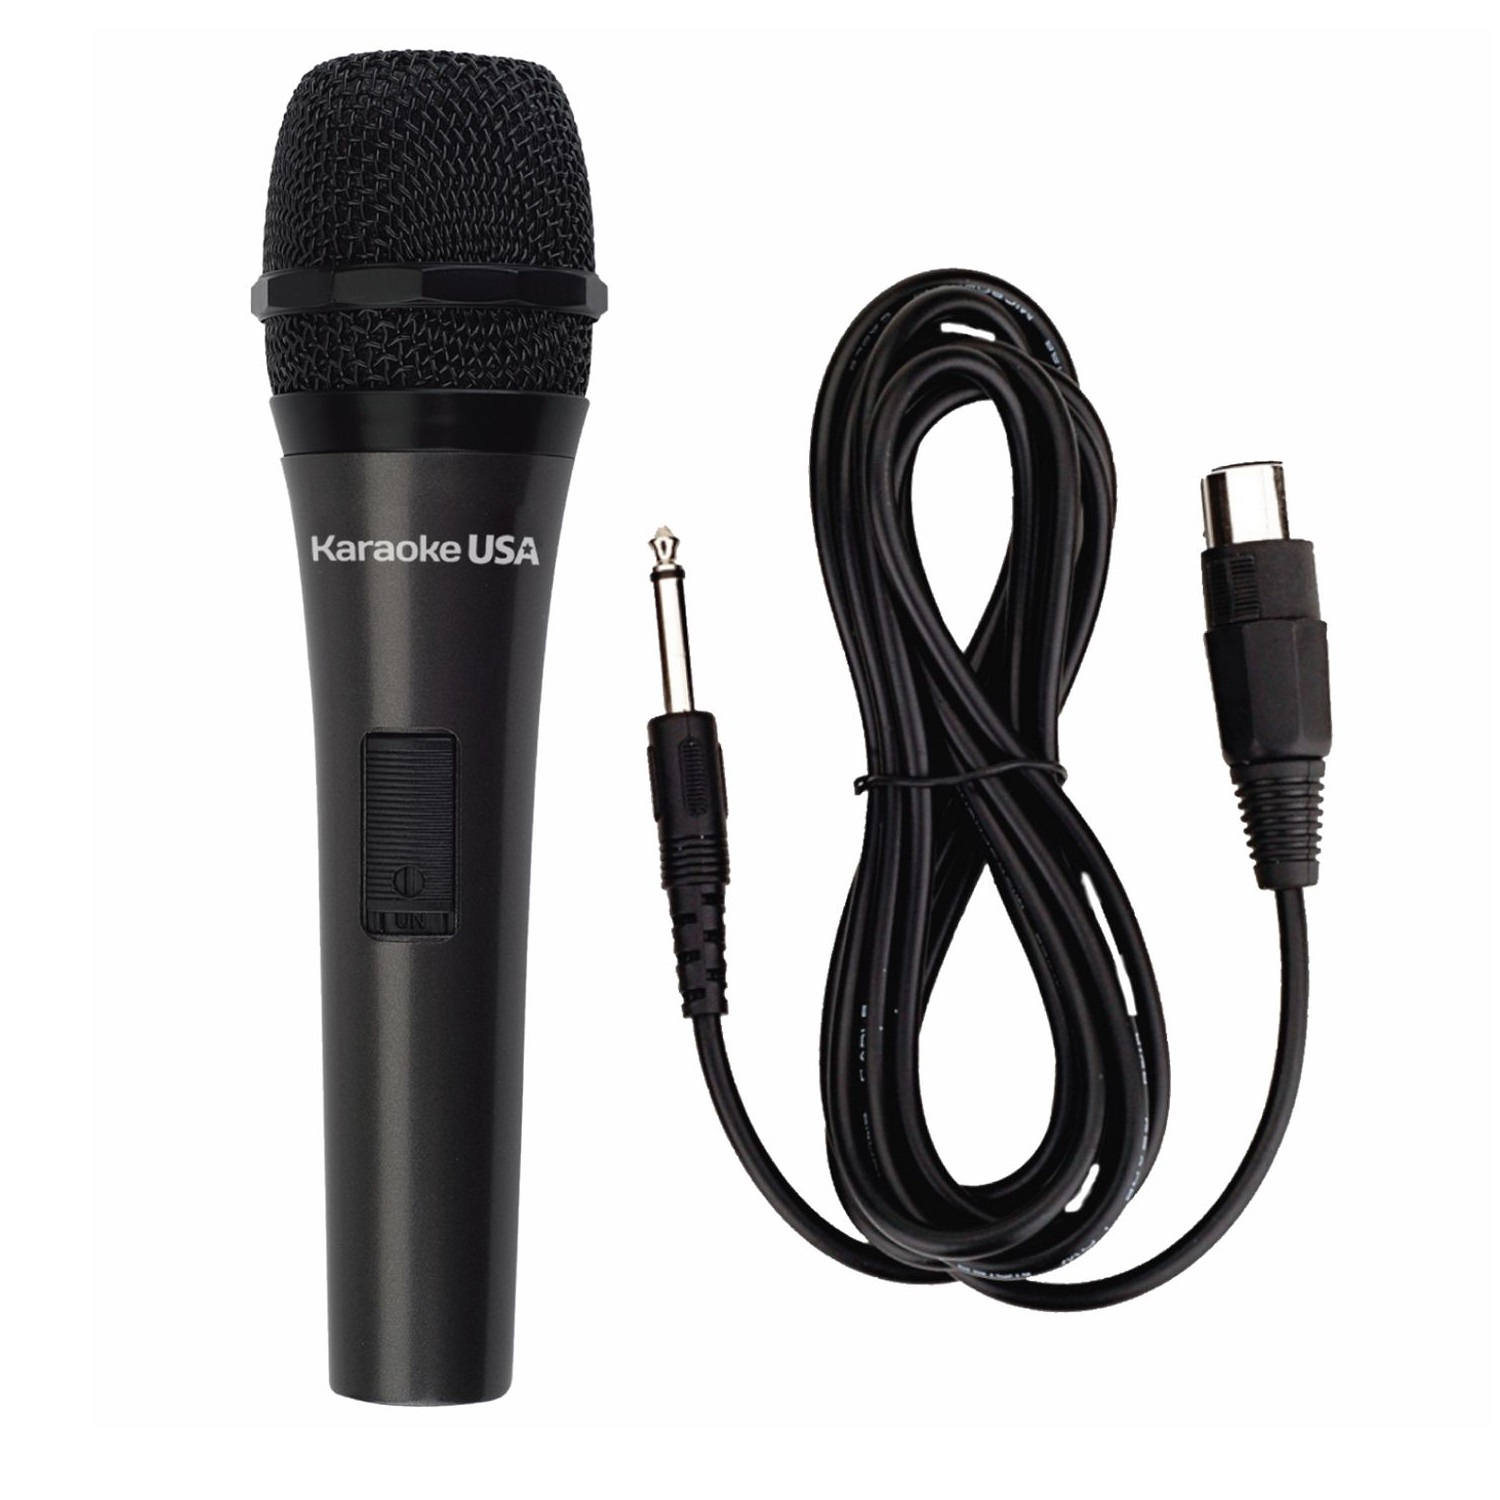 657dce76 7412 44a1 860f 69e5f08efe42_1.24ab7e9513d14c619ce60c0e86c36ef5 microphones & headphones walmart com RadioShack Wireless Microphone at edmiracle.co